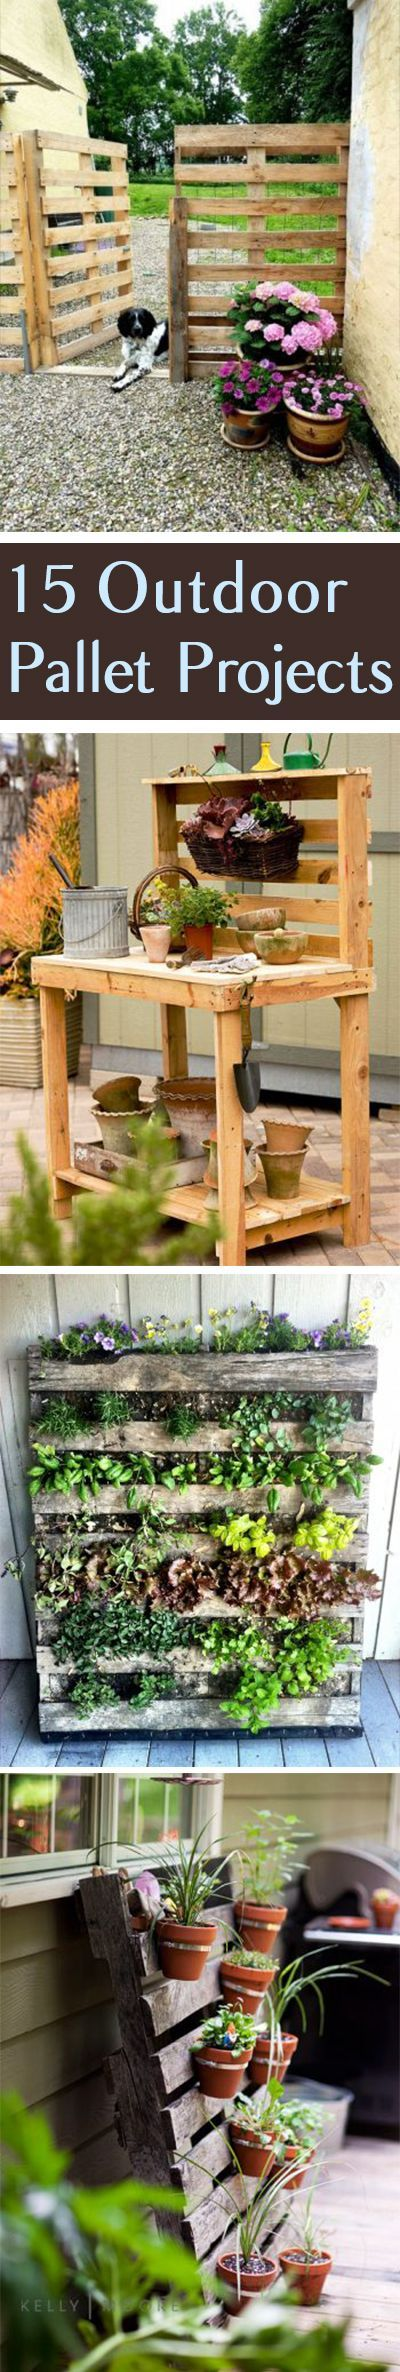 outdoor pallet projects outdoor pallet projects outdoor pallet